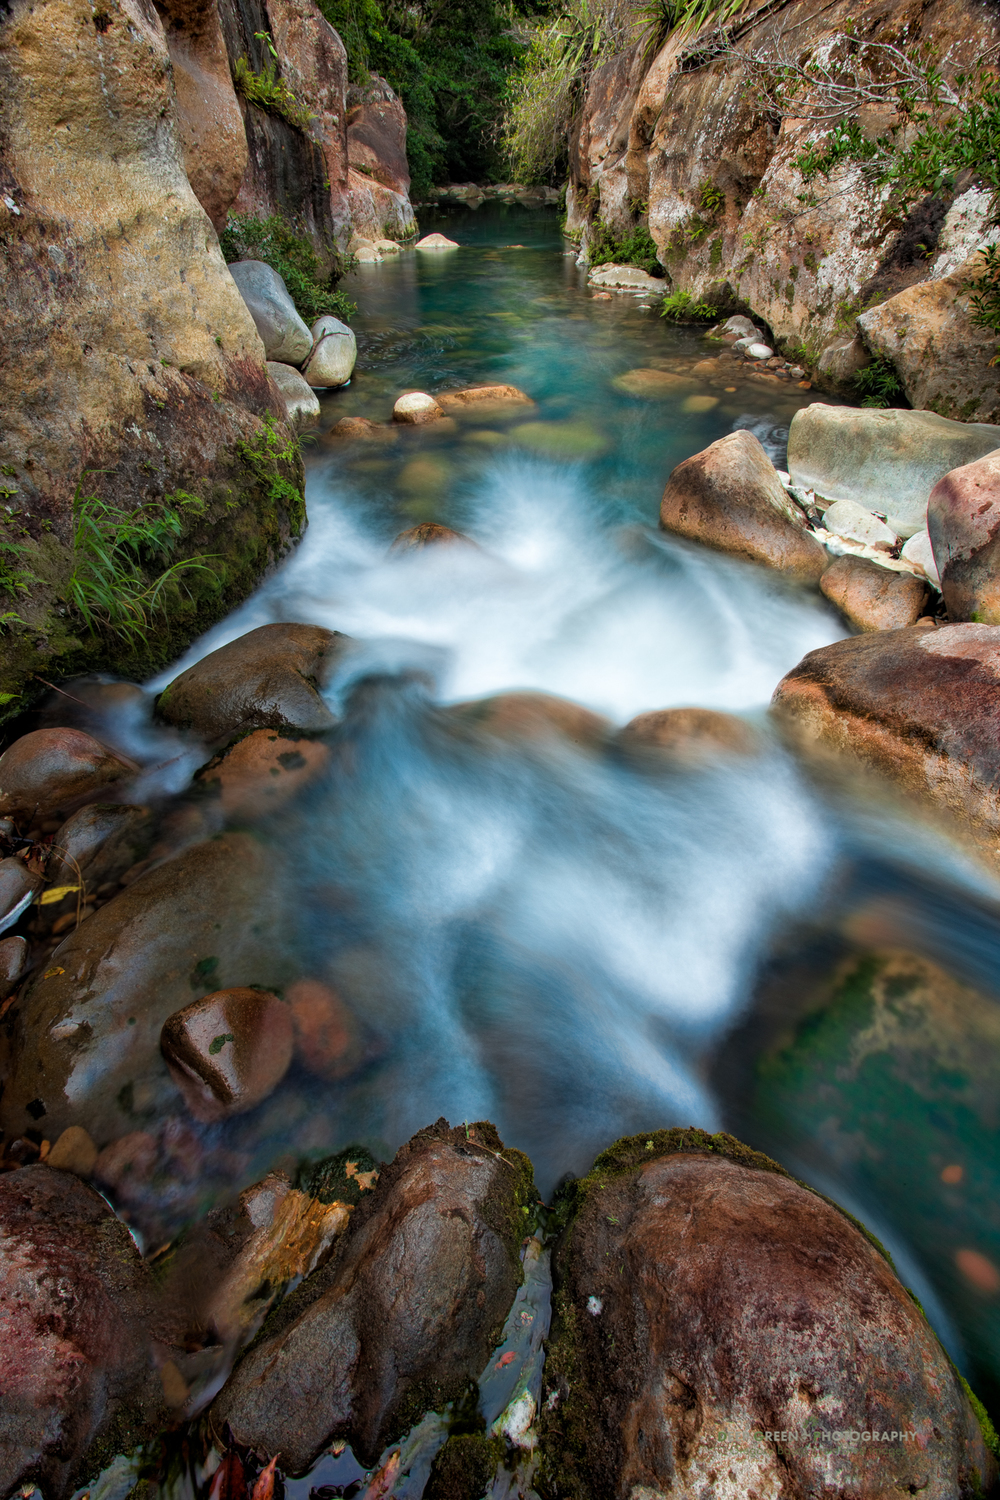 the Rio Blanco below Rincon de la Vieja National Park has colorful water resulting from volcanic activity